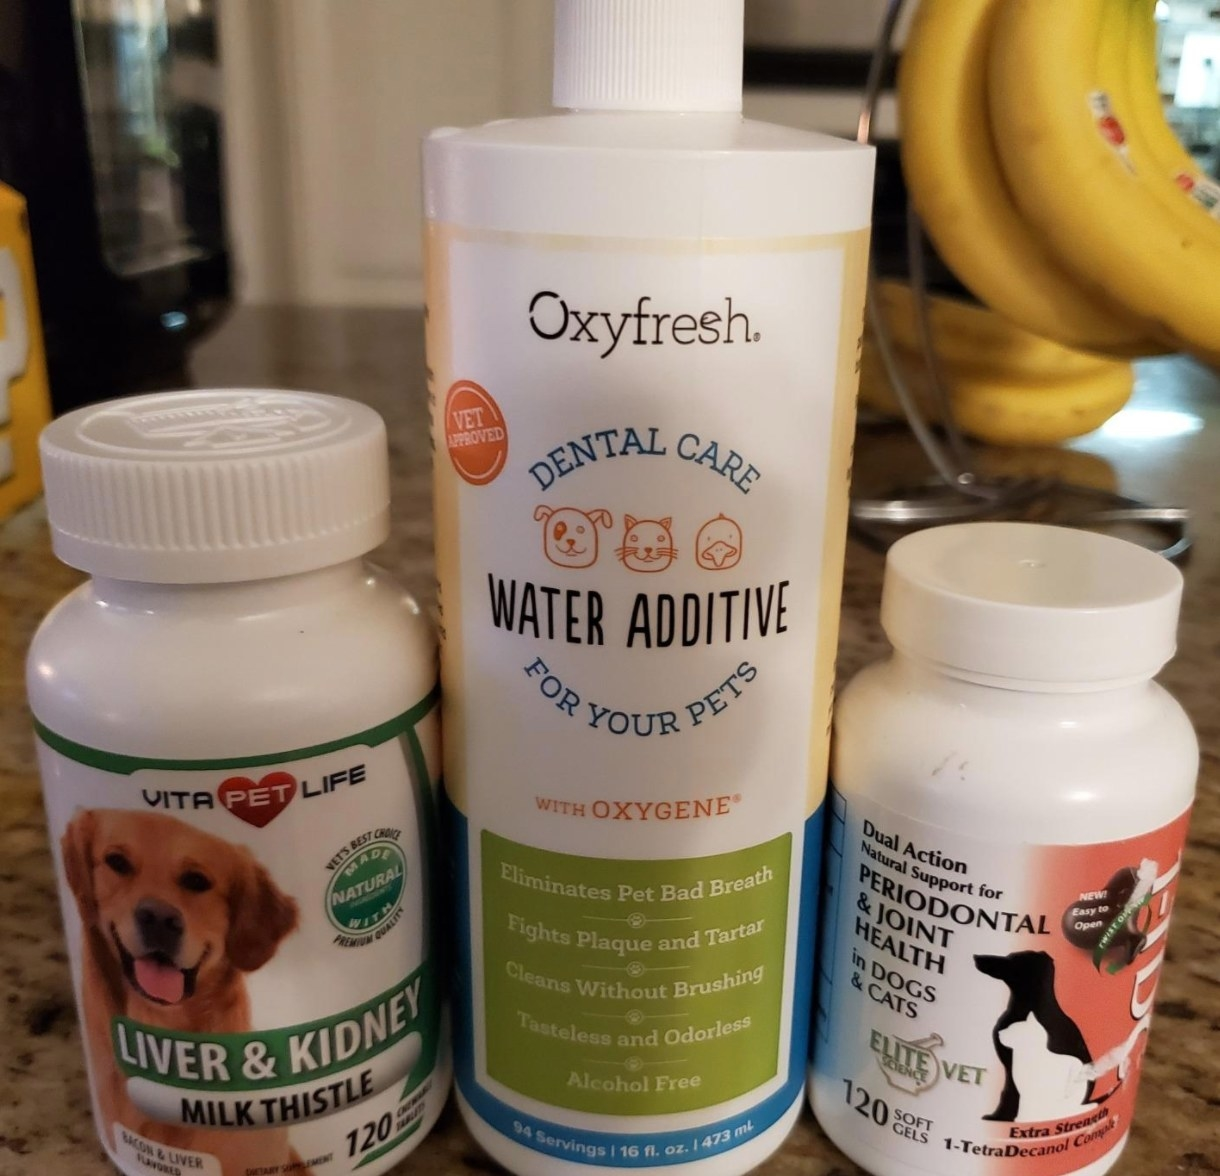 The dental care solution for pets